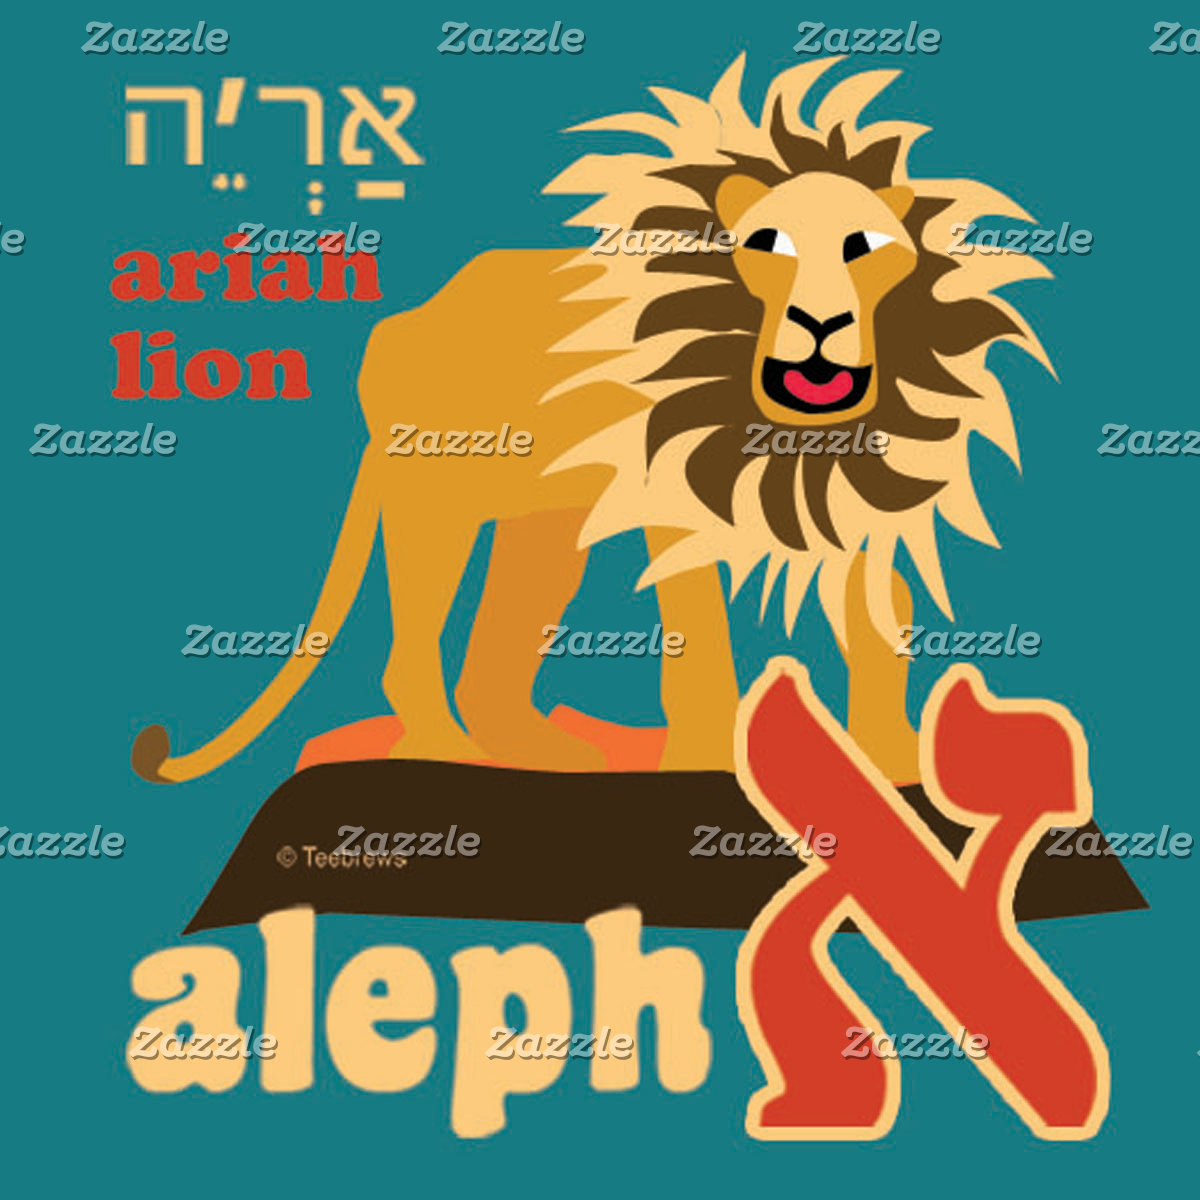 Alephbet Pillows